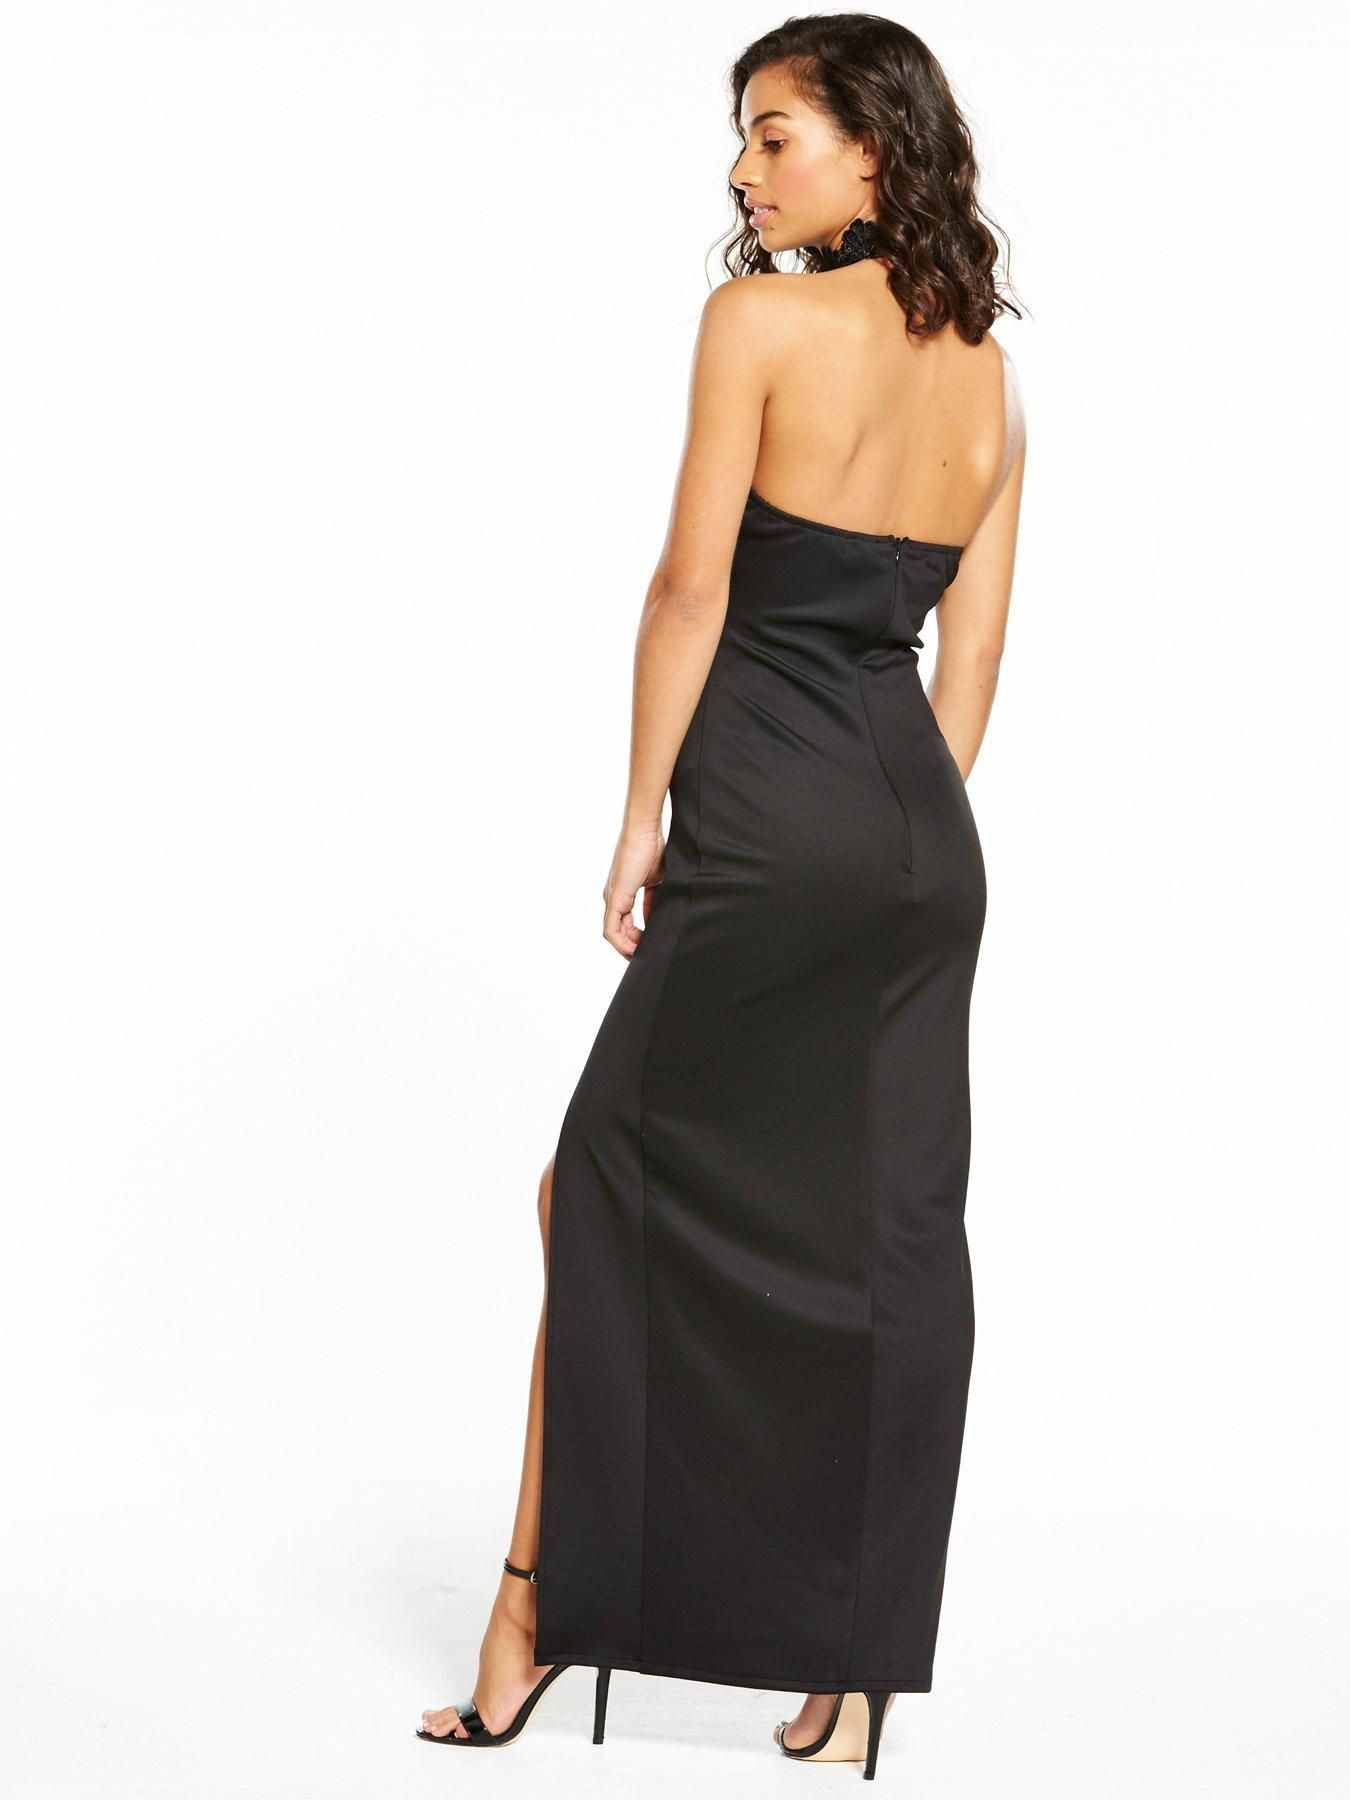 e2256463c AX Paris Petite Lace Choker Maxi Dress - Black Get the red carpet look with  this